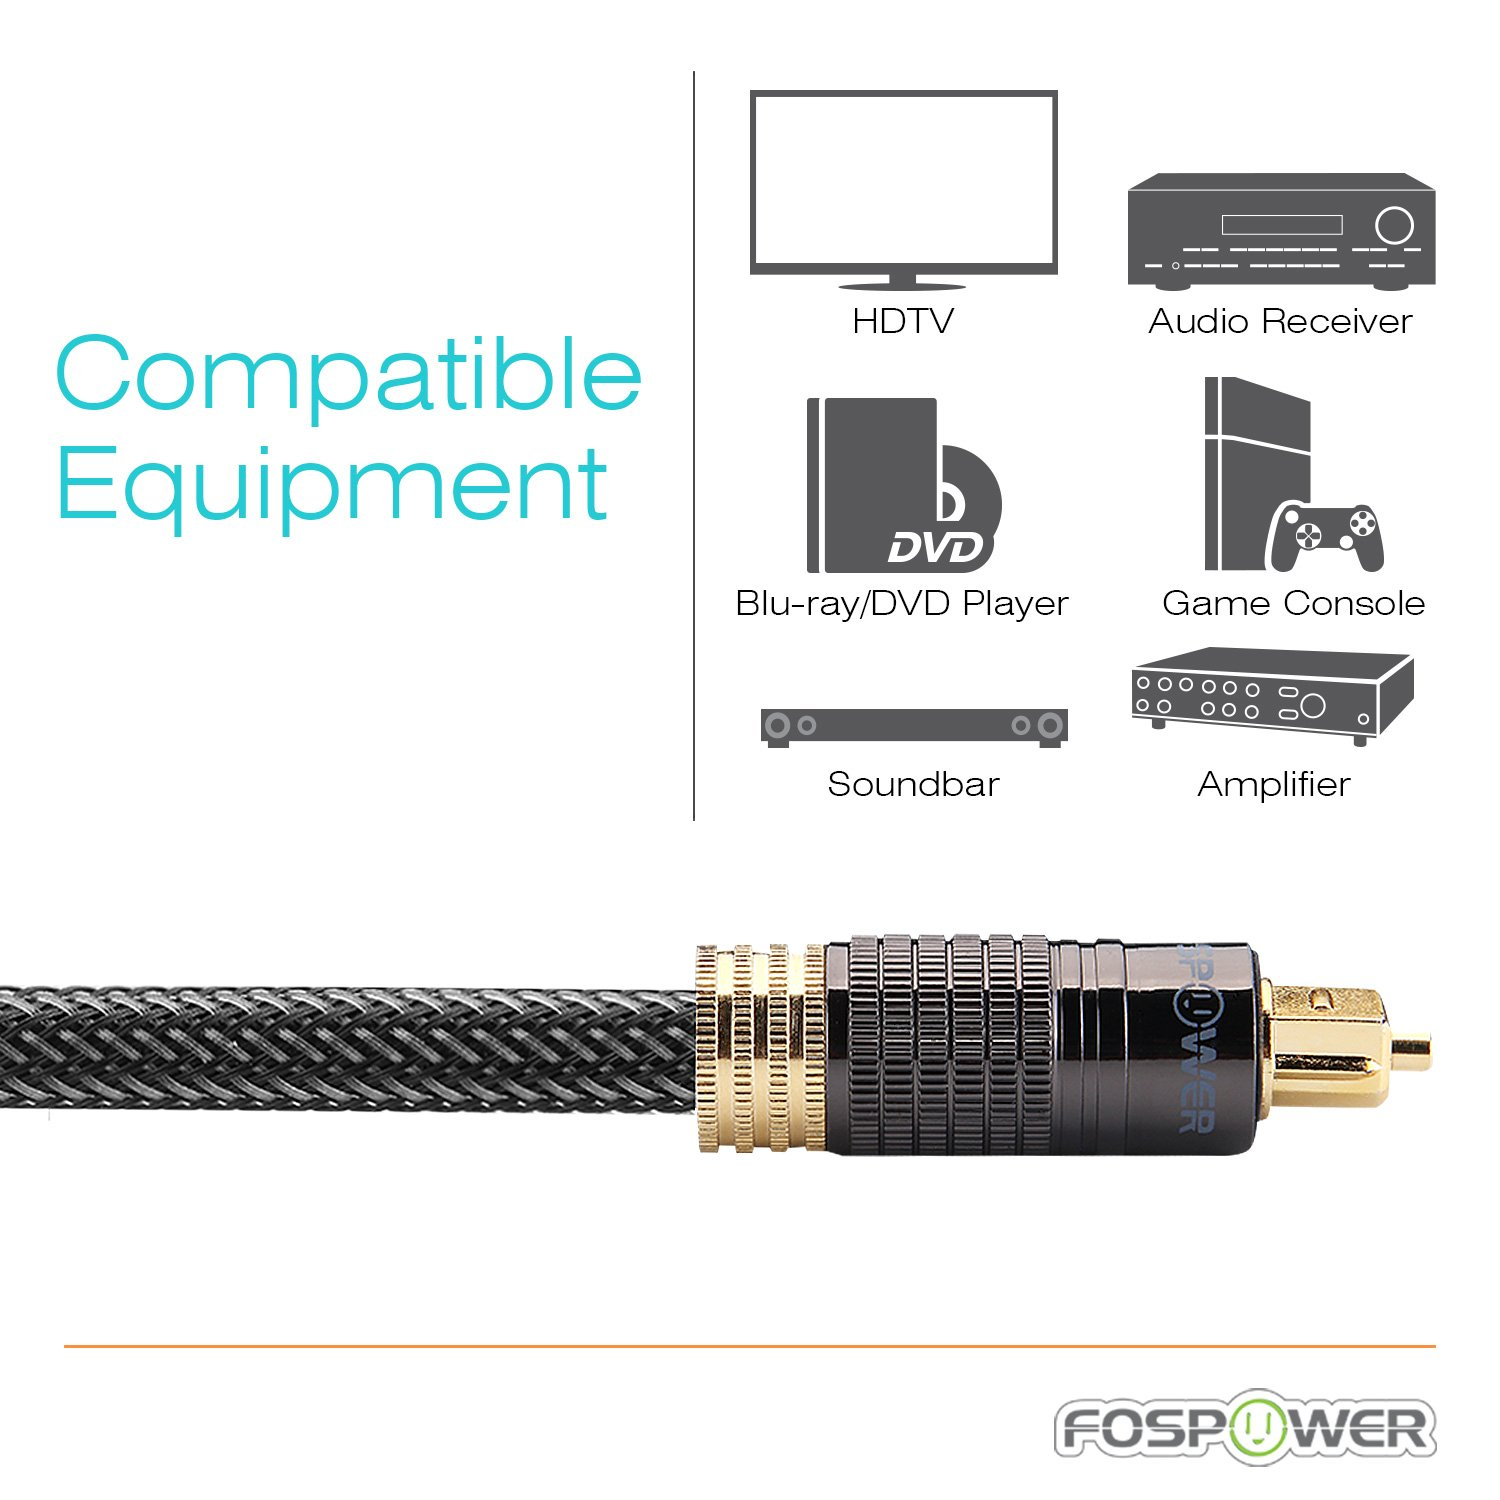 FosPower (25 Feet) 24K Gold Plated Toslink Digital Optical Audio Cable (S/PDIF) - [Zero RFI & EMI Interference] Metal Connectors & Ultra Durable Nylon Braided Jacket by FosPower (Image #8)